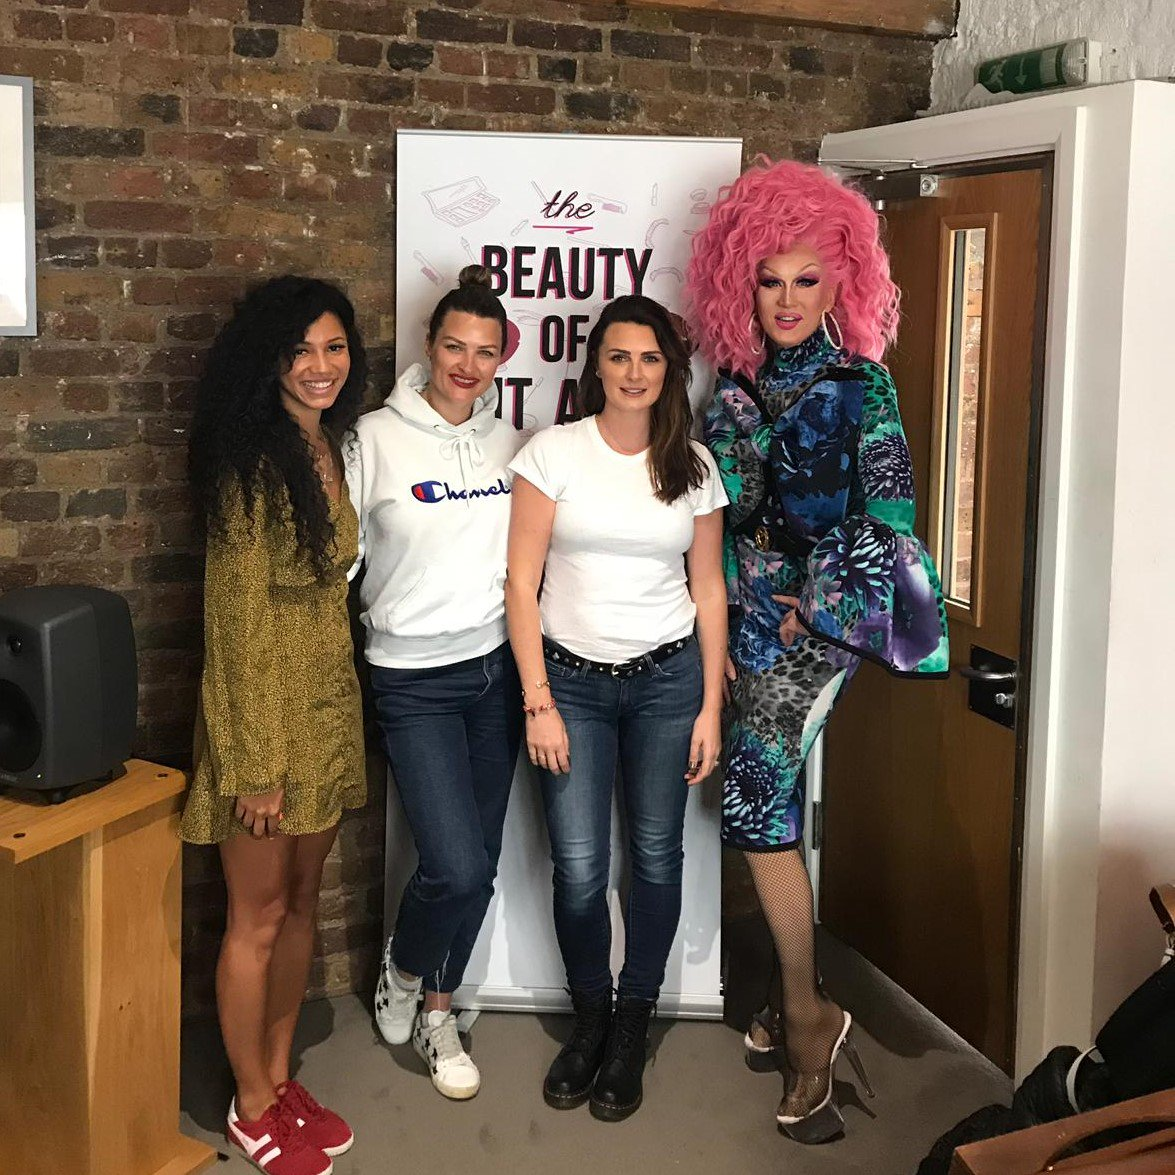 Our Beauty of it All podcast episode 6 is out...'Makeup is not a drag'. Go check it out now! #podcast #beauty #drag #joinus